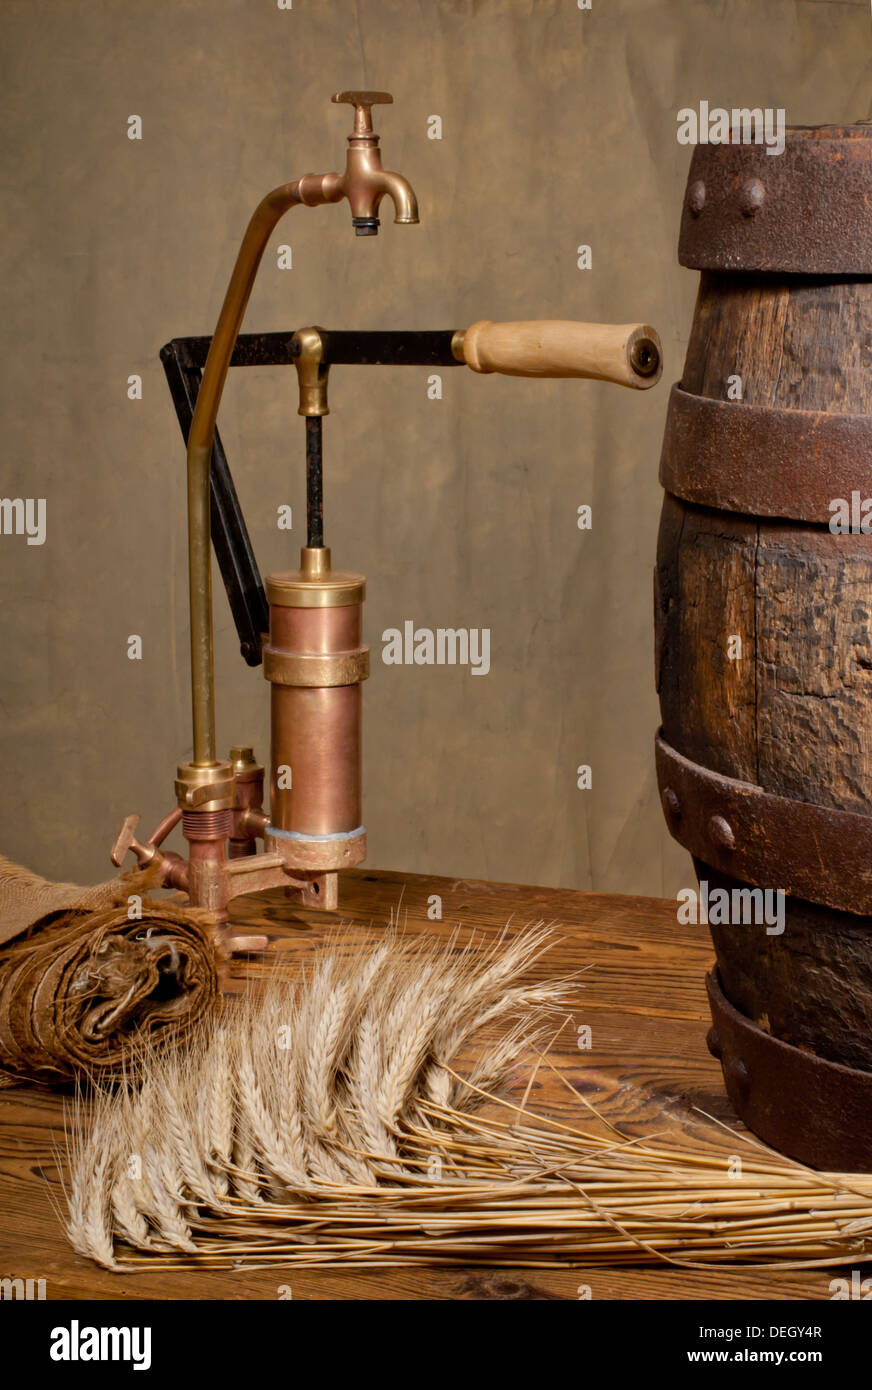 faucet and beer barrel Stock Photo: 60608823 - Alamy